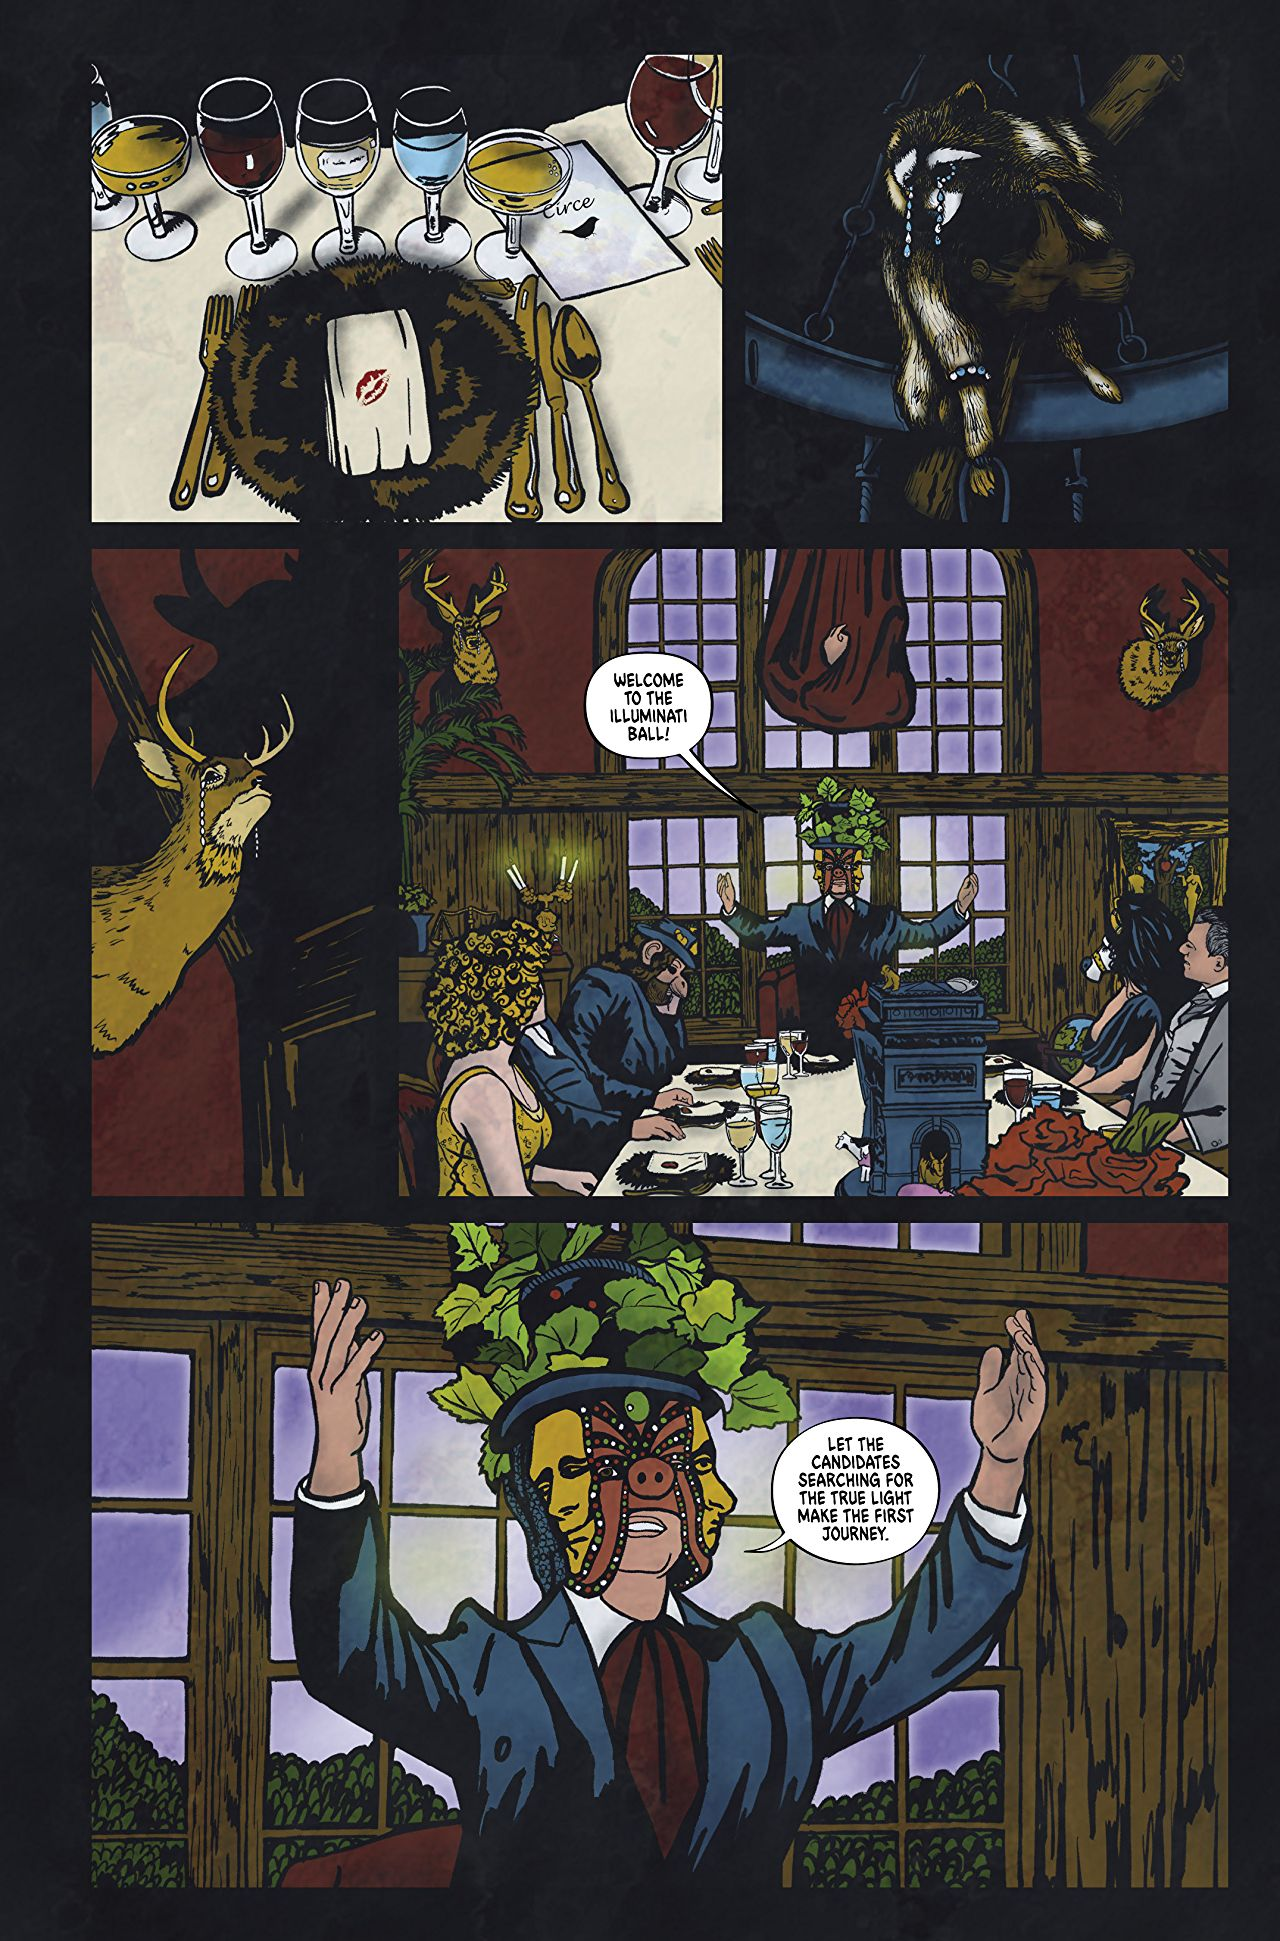 Graphic Novel The Illuminati Ball Is Eyes Wide Shut Crossed With The Island of Dr. Moreau 1